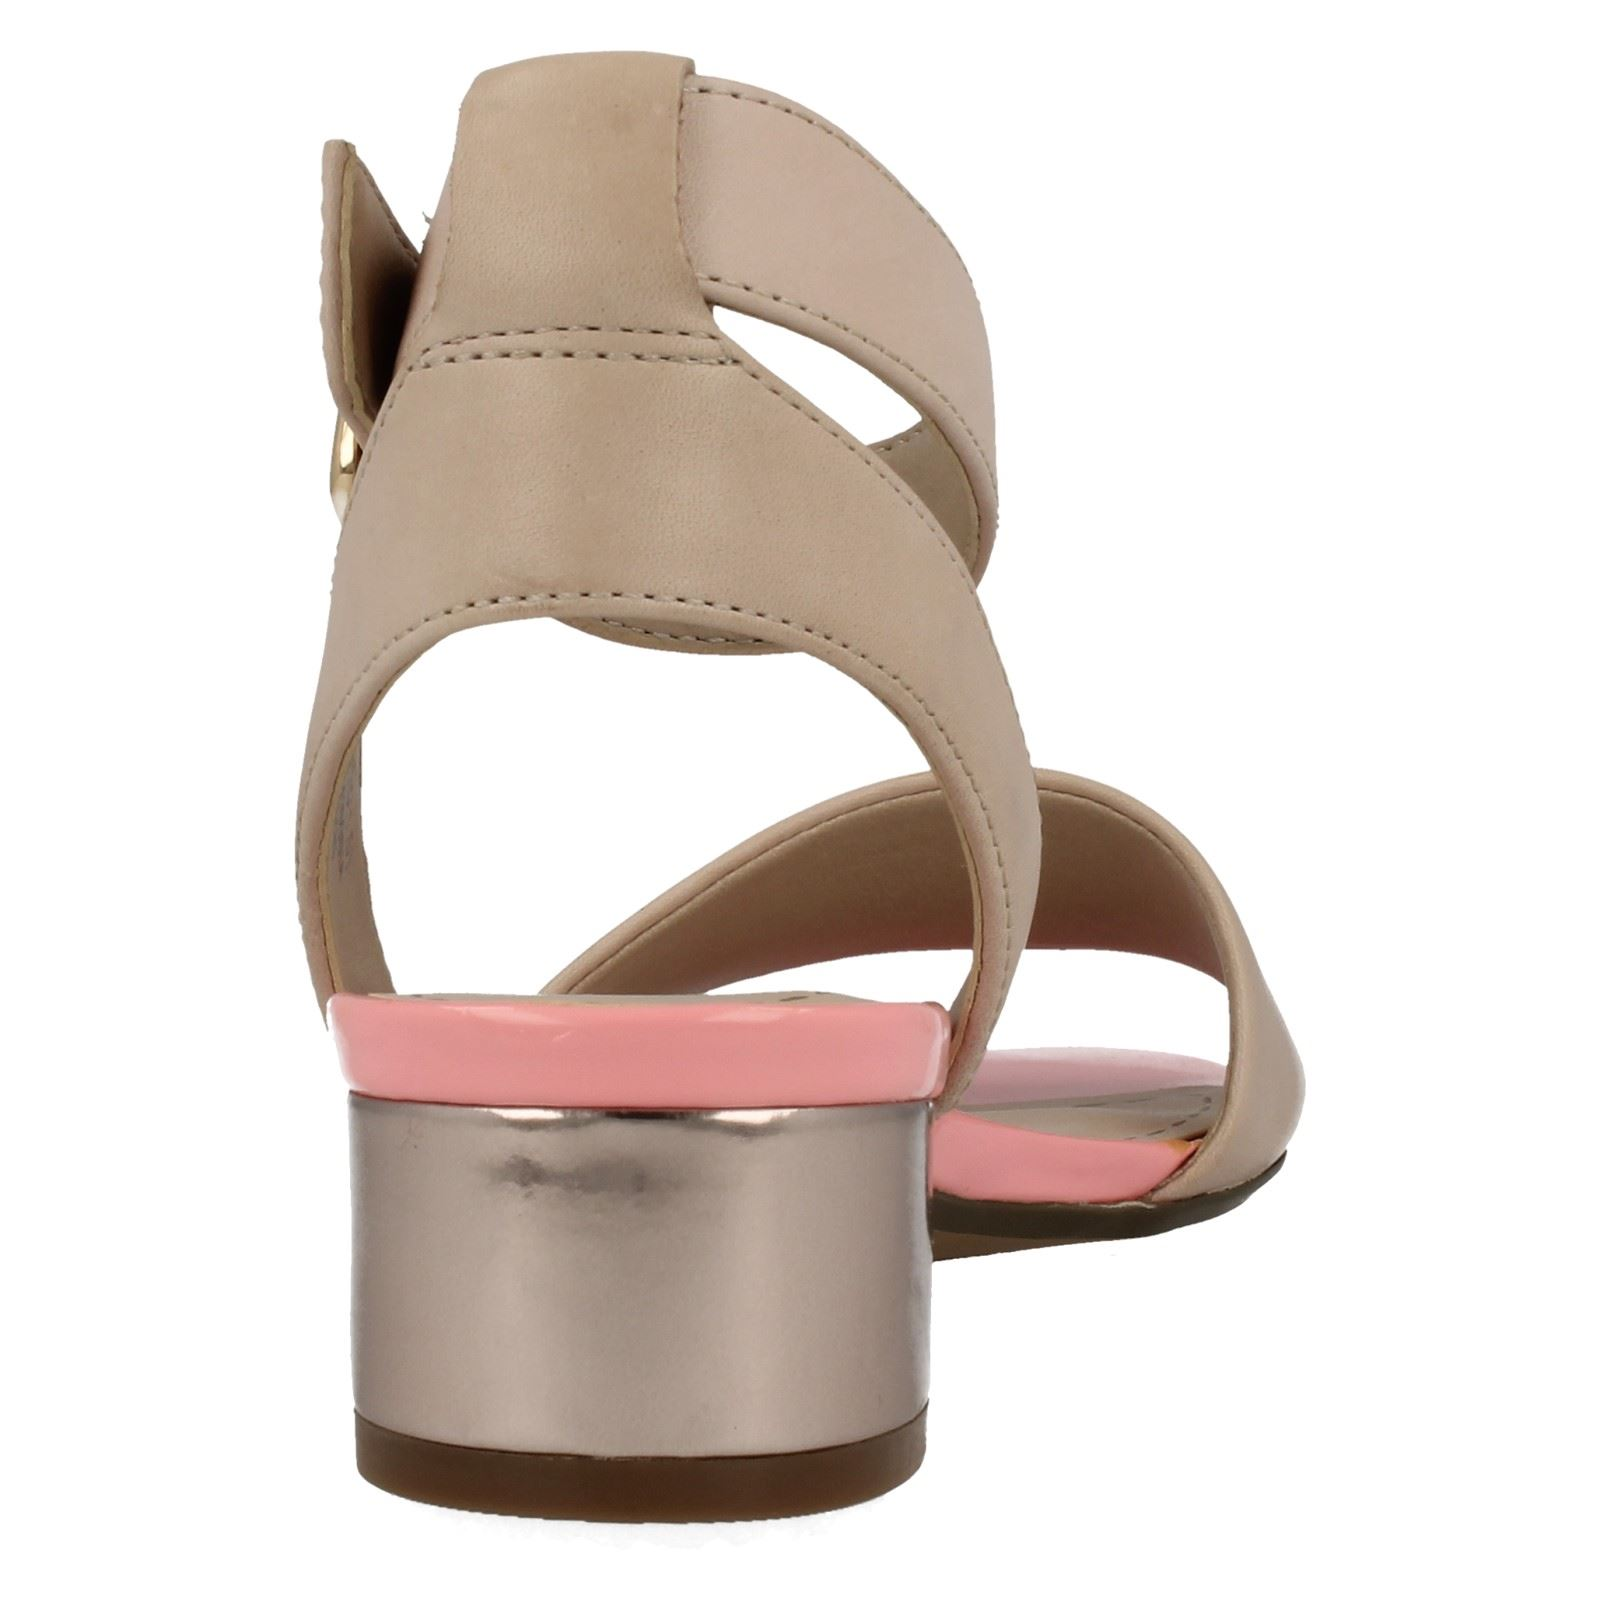 1ec67f09b8d8 Ladies-Clarks-Sandals-039-Sharna-Balcony-039 thumbnail 3